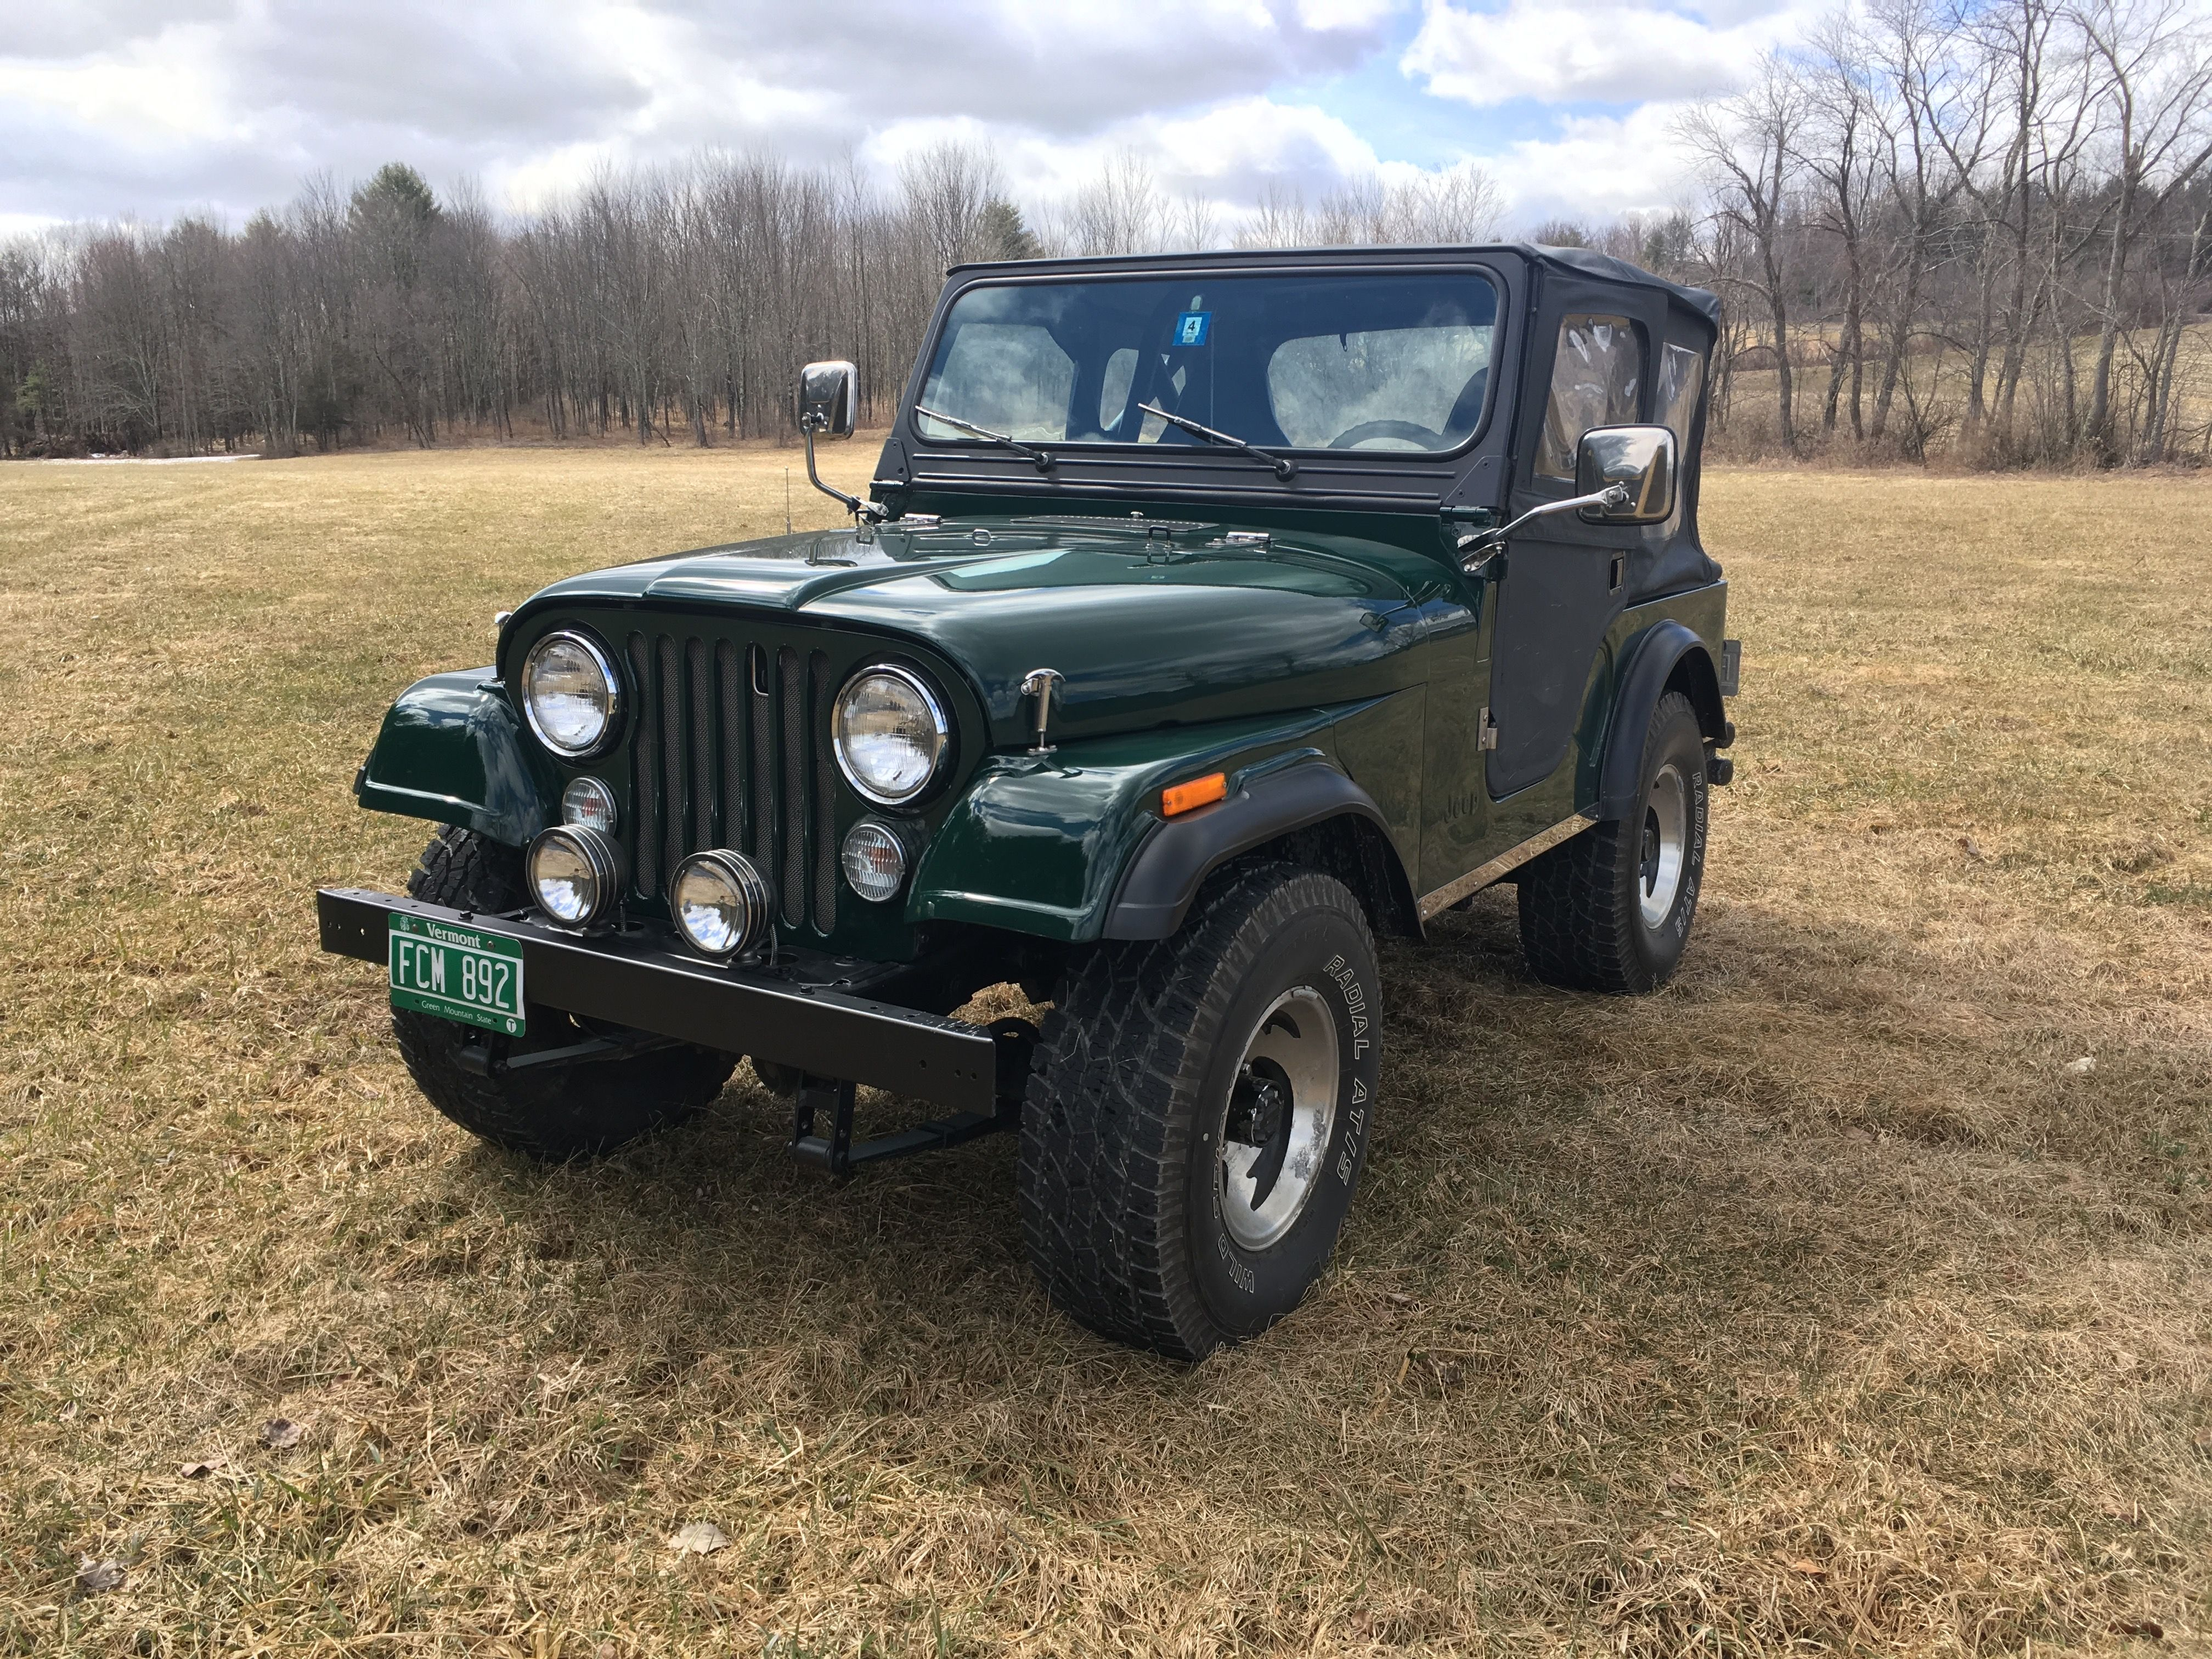 With Soft Top On Jeep Cj5 Old Jeep Jeep